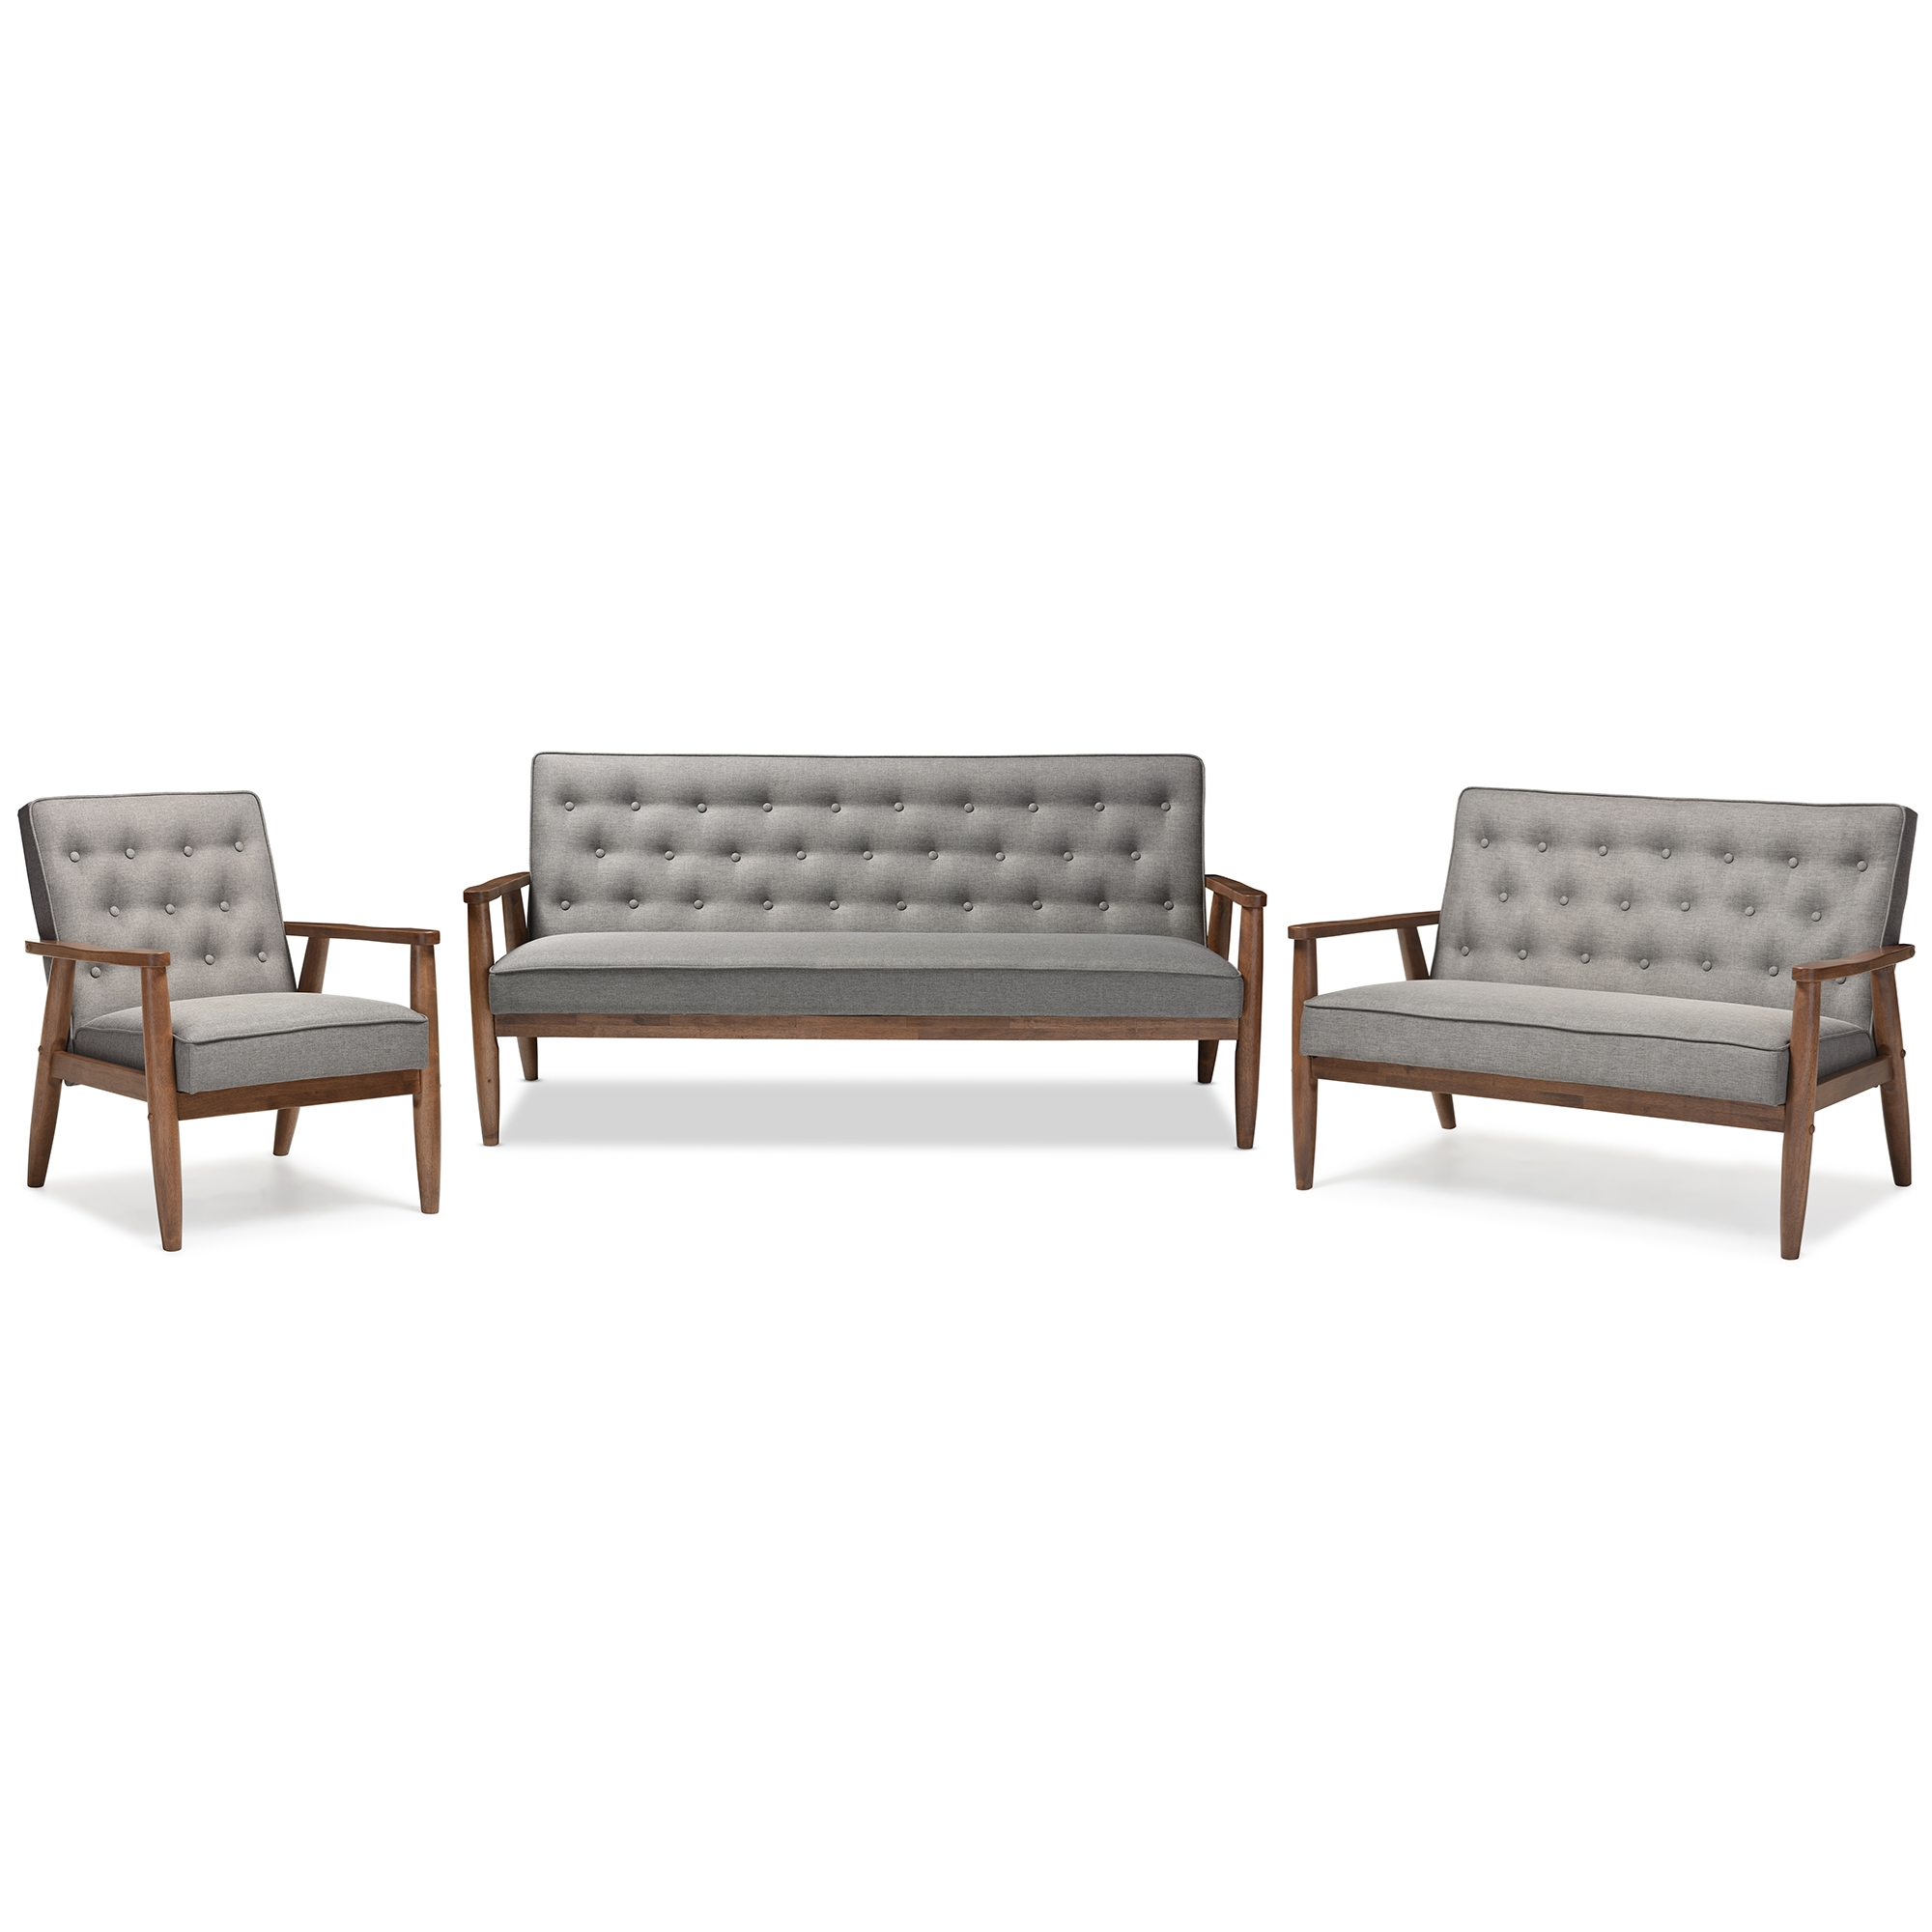 Baxton Studio Sorrento Mid Century Retro Modern Grey Fabric Upholstered  Wooden 3 Piece Living Room Set